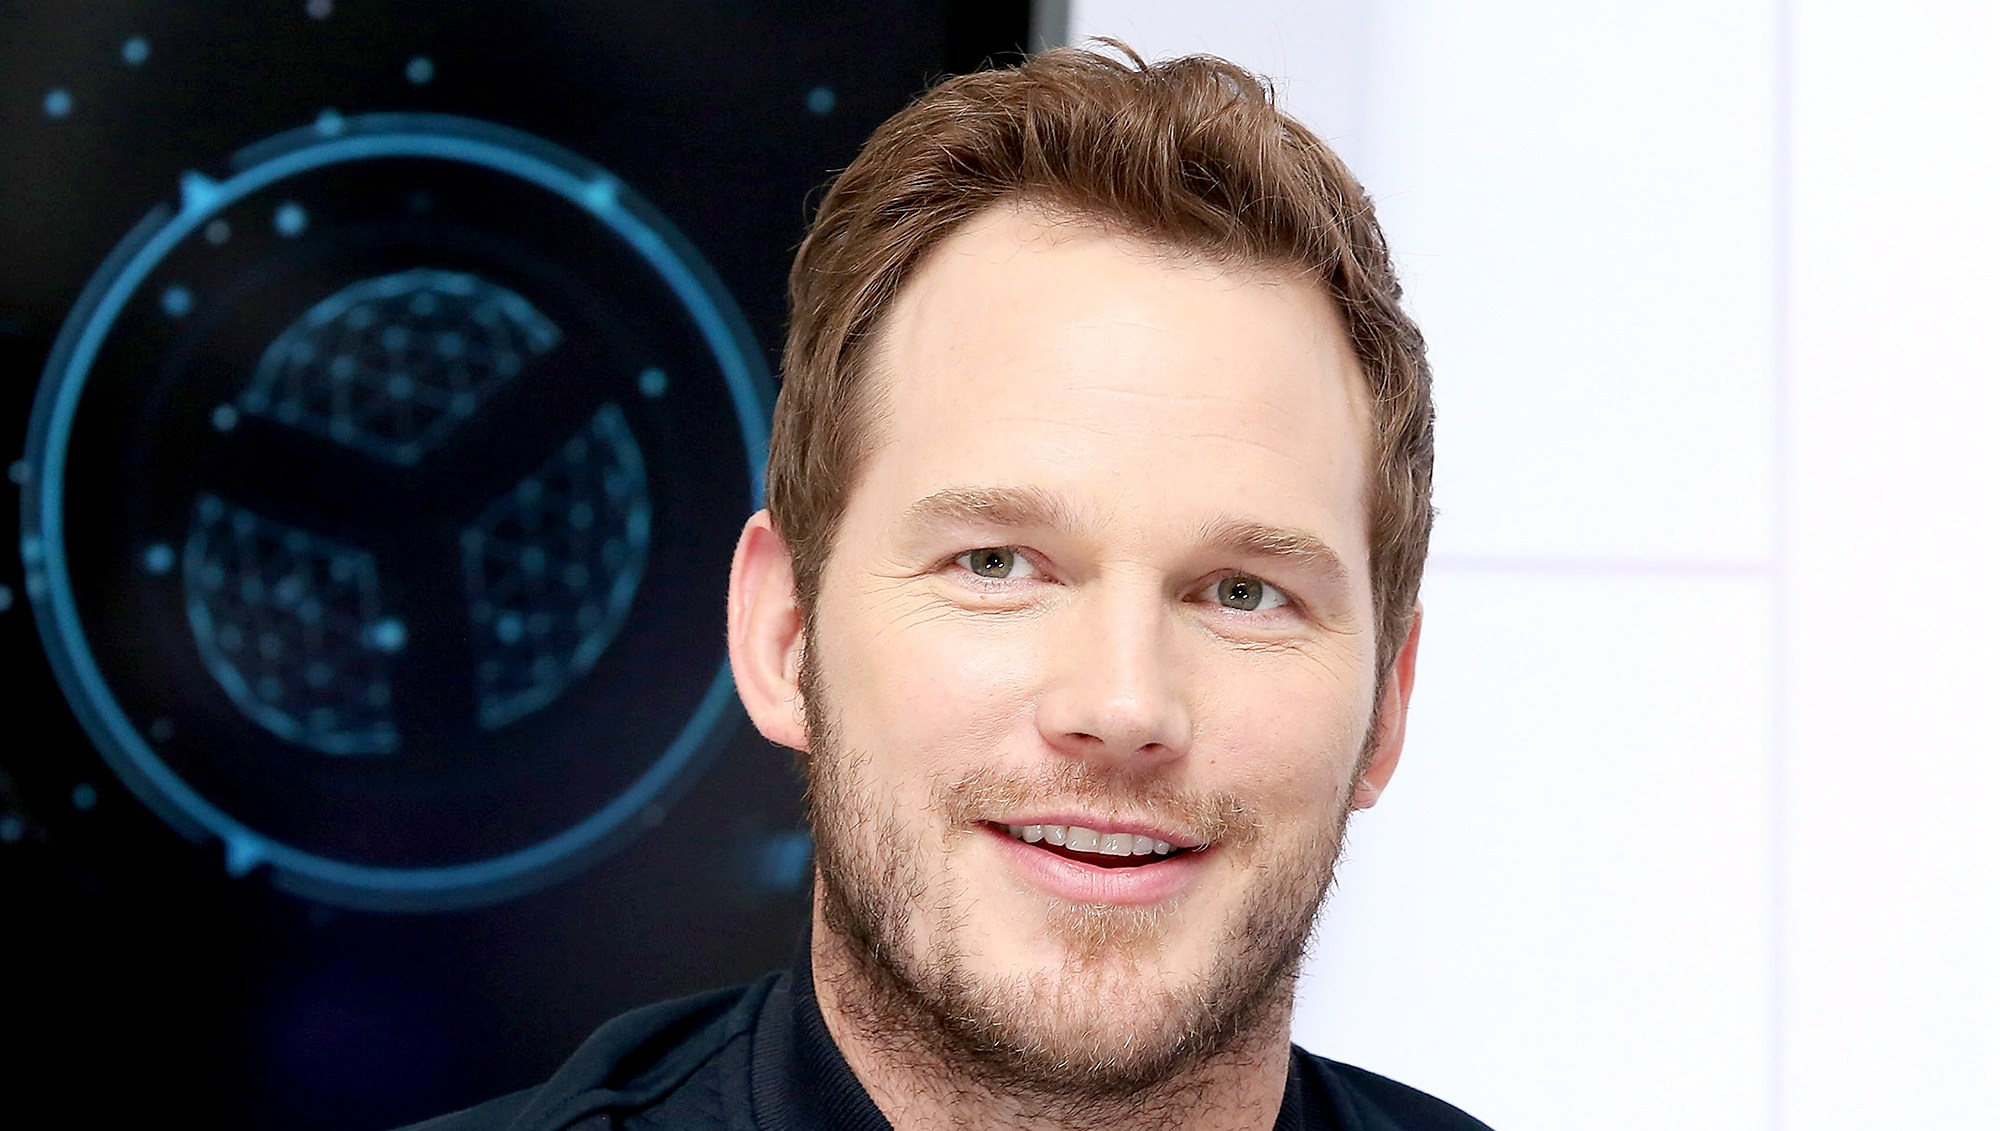 Chris-Pratt-Brags-About-His-Sheep